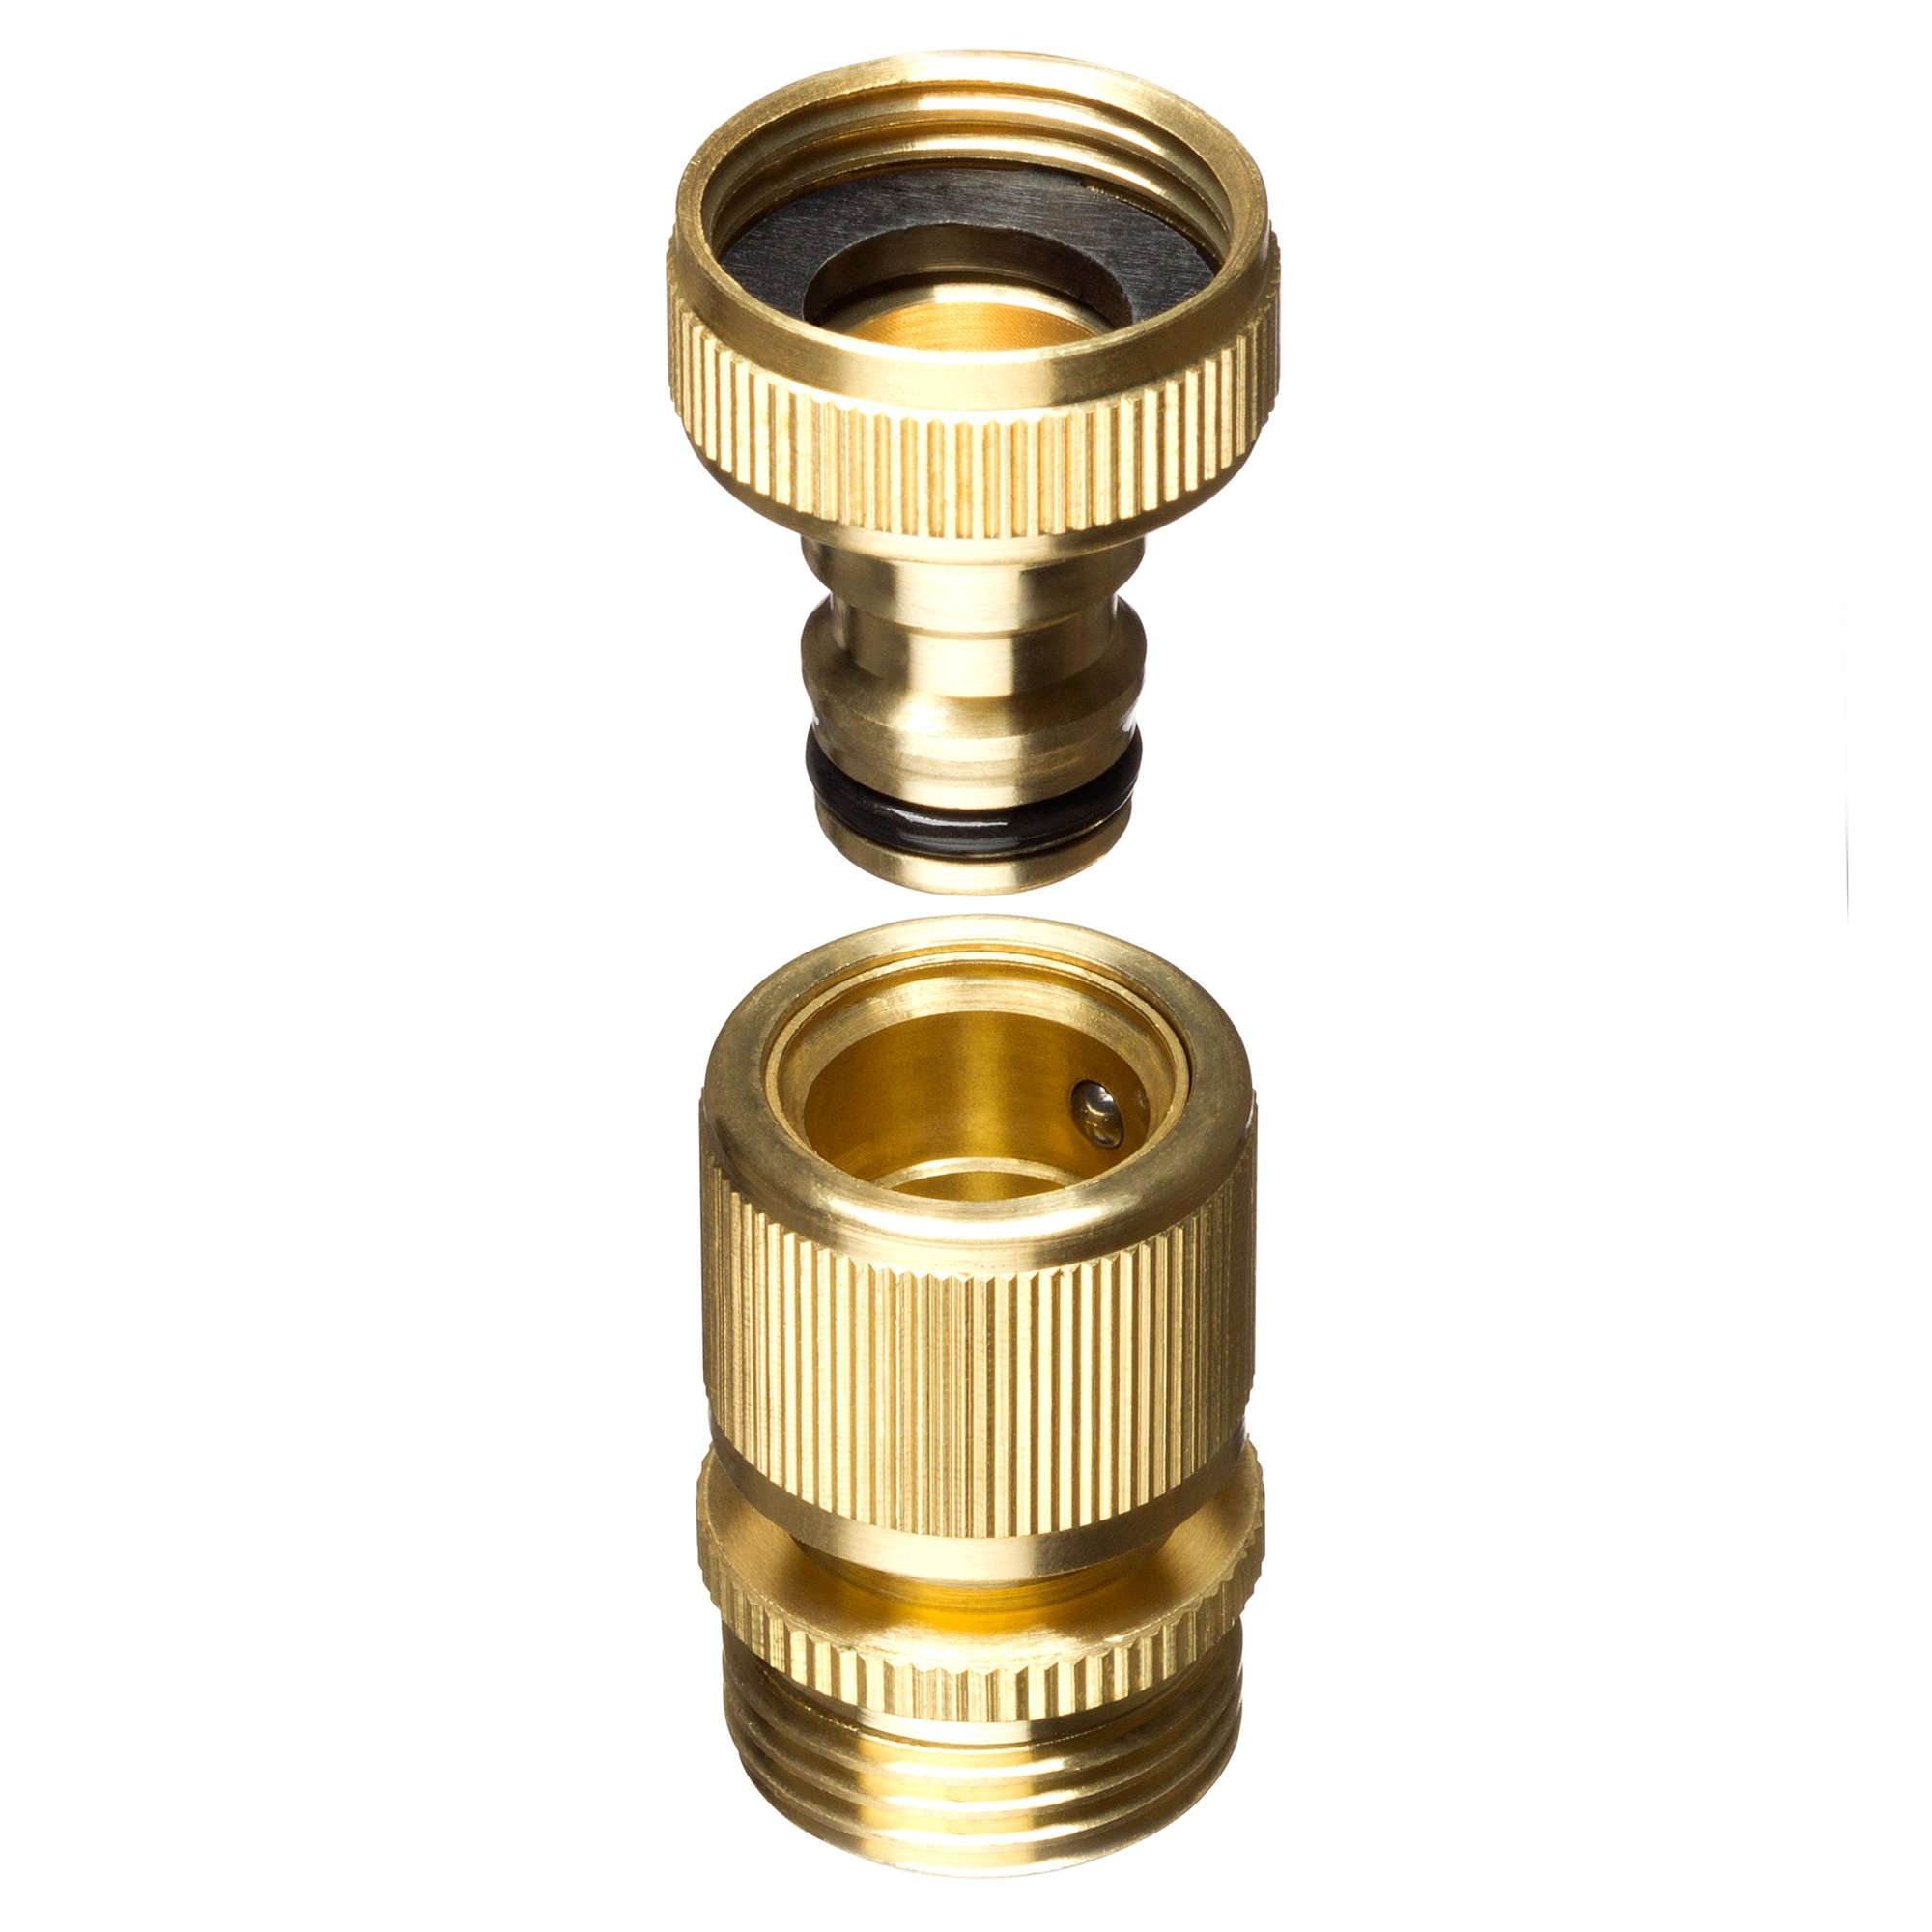 New Garden Hose Quick Connector. ¾ inch GHT Brass Easy Connect Fitting 4-Piece Set Male and Female by GORILLA EASY CONNECT (Image #3)